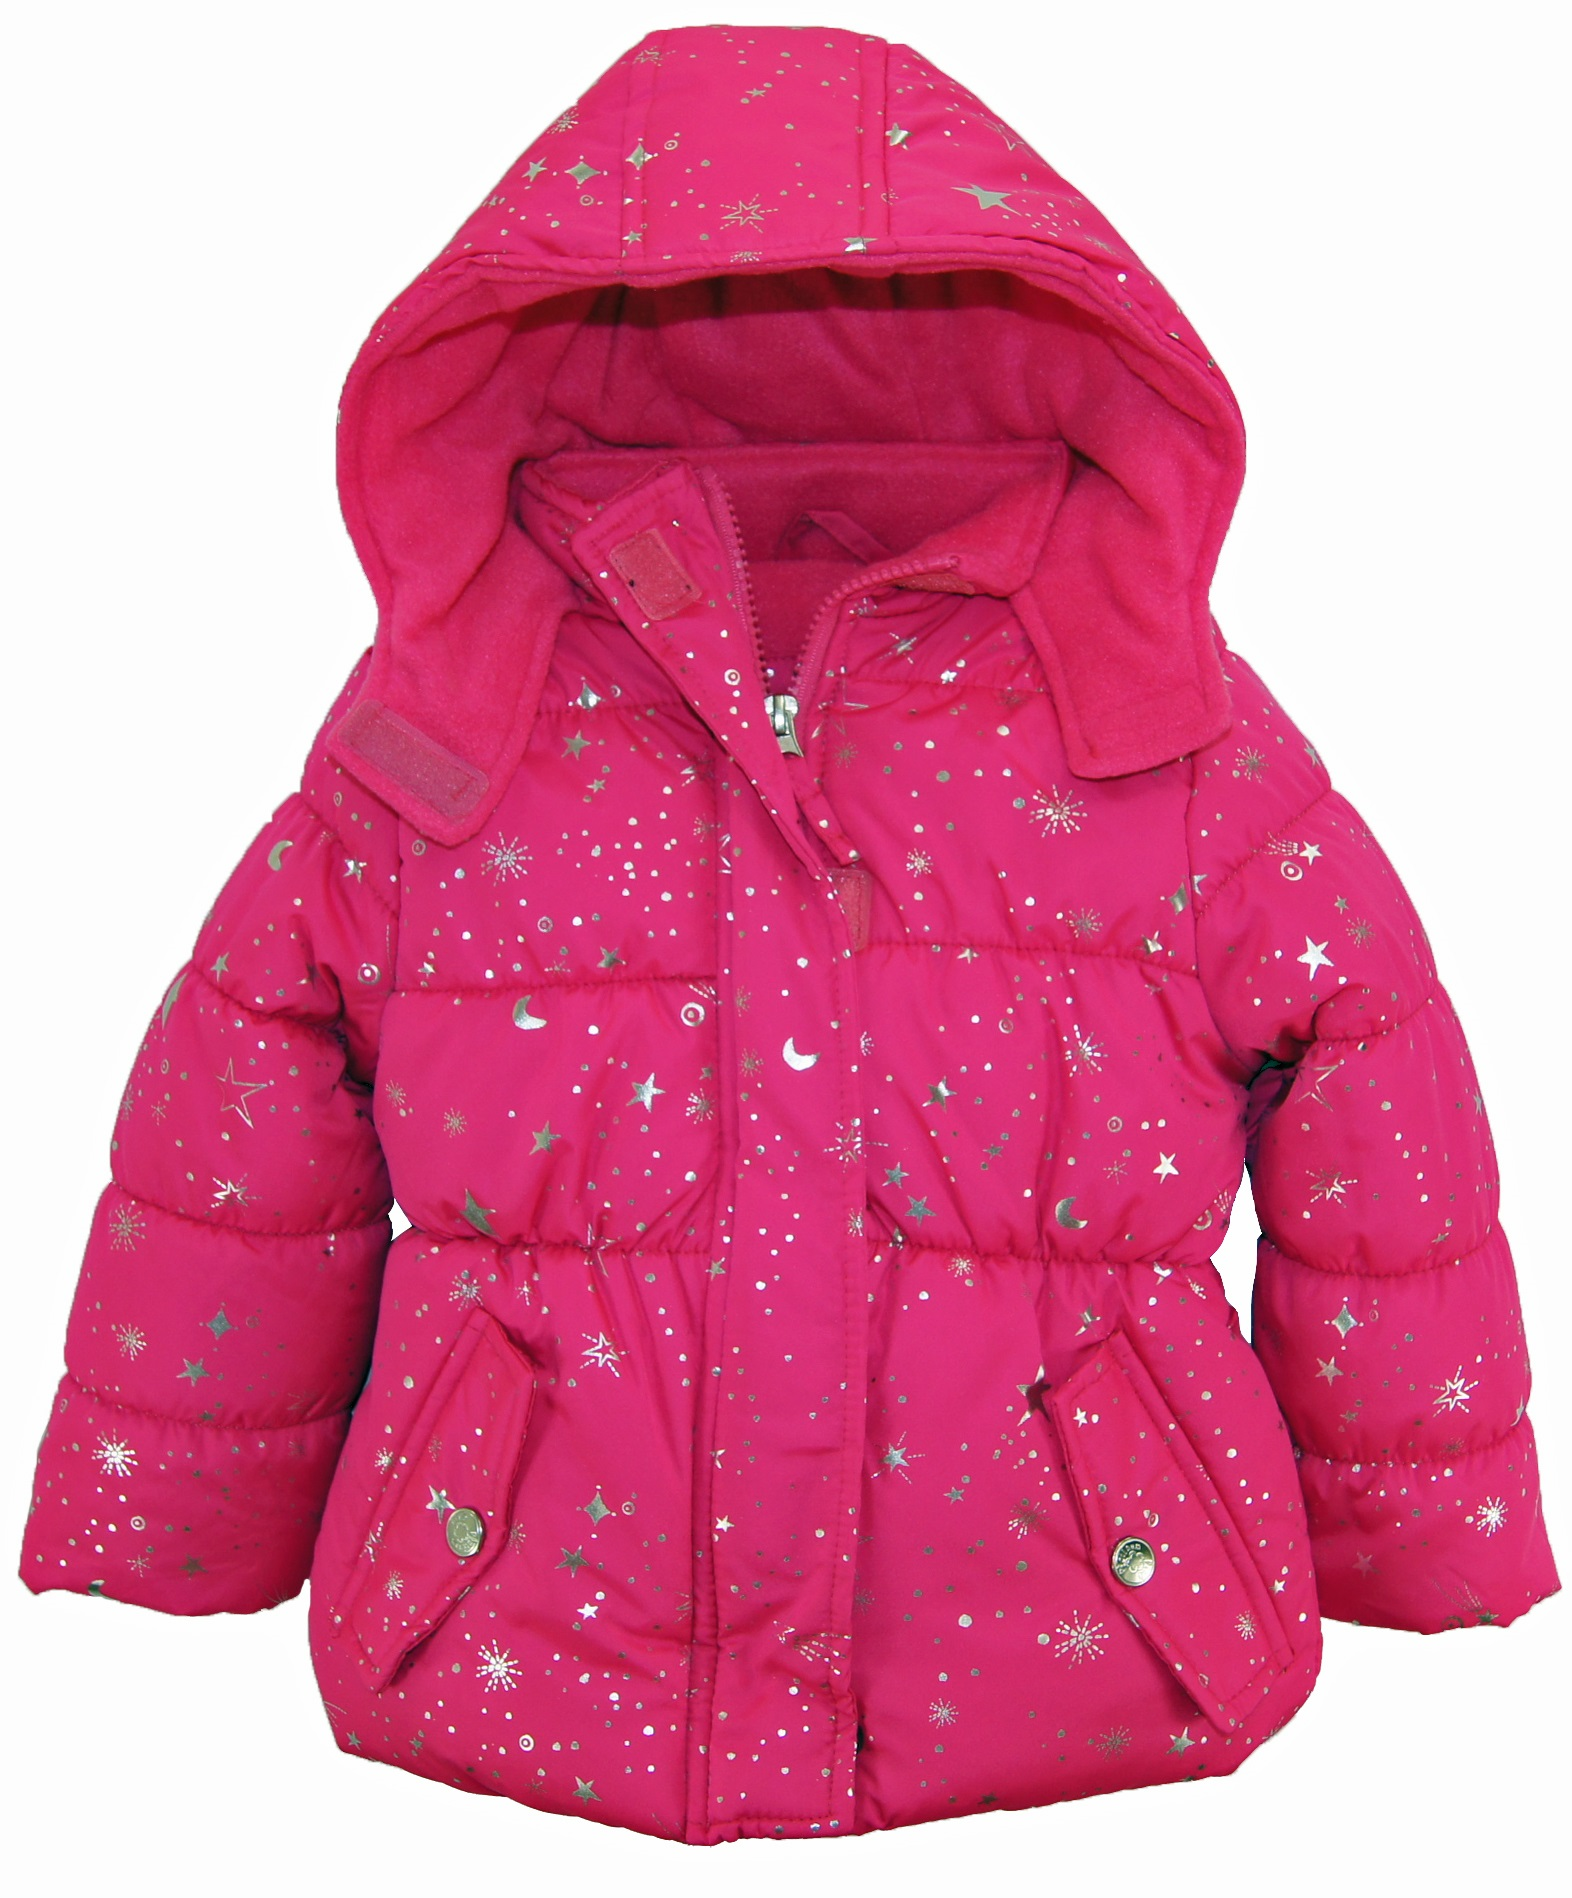 Discover a wide variety of stylish toddler winter jackets in fun looks for girls and boys. Our toddler winter coat collection for girls emphasizes cute design and dynamic color. Choose from adorable peacoats, trench coats, faux fur coats, moto jackets and an array of warm vests.